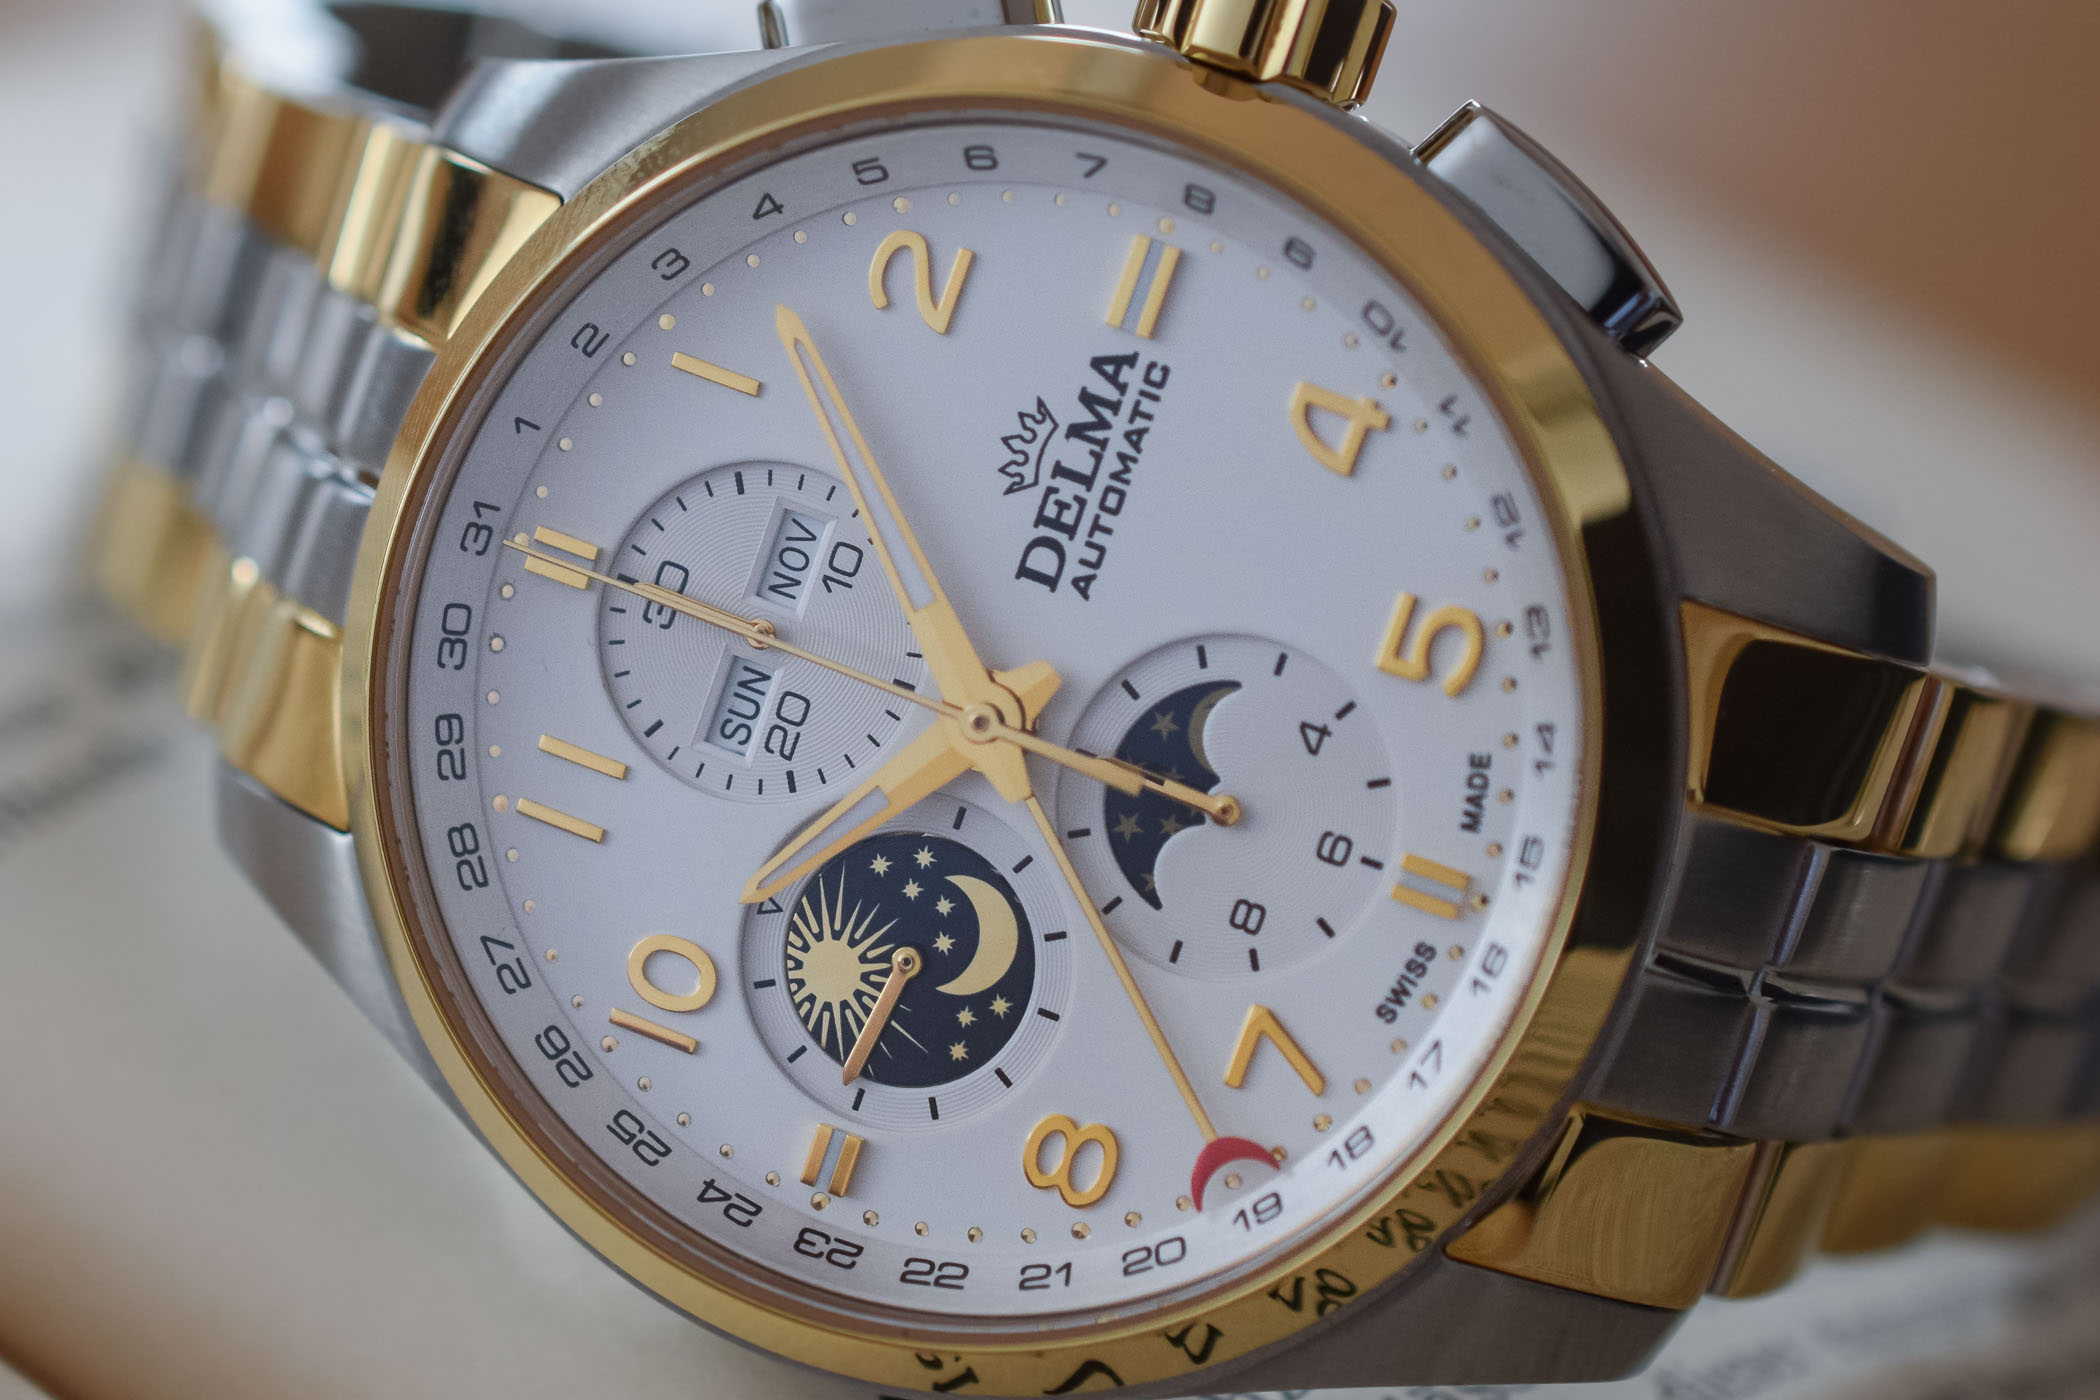 Delma Klondike Moonphase Automatic Chronograph - 3